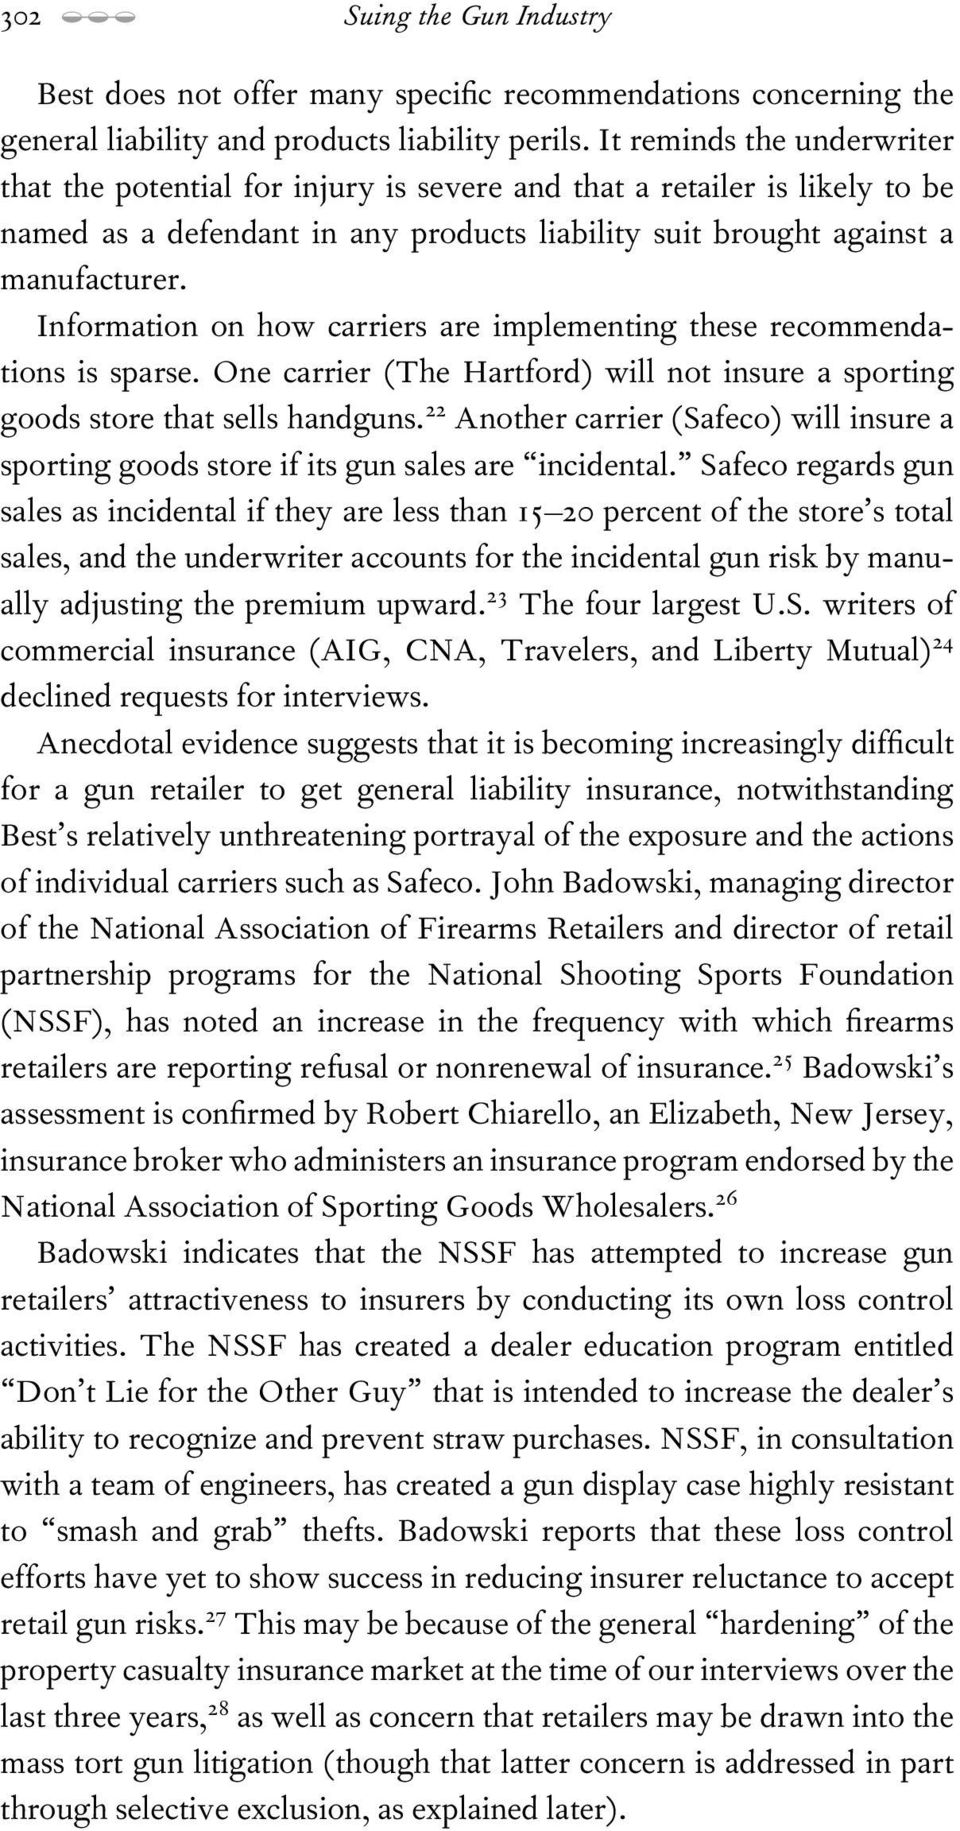 Information on how carriers are implementing these recommendations is sparse. One carrier (The Hartford) will not insure a sporting goods store that sells handguns.